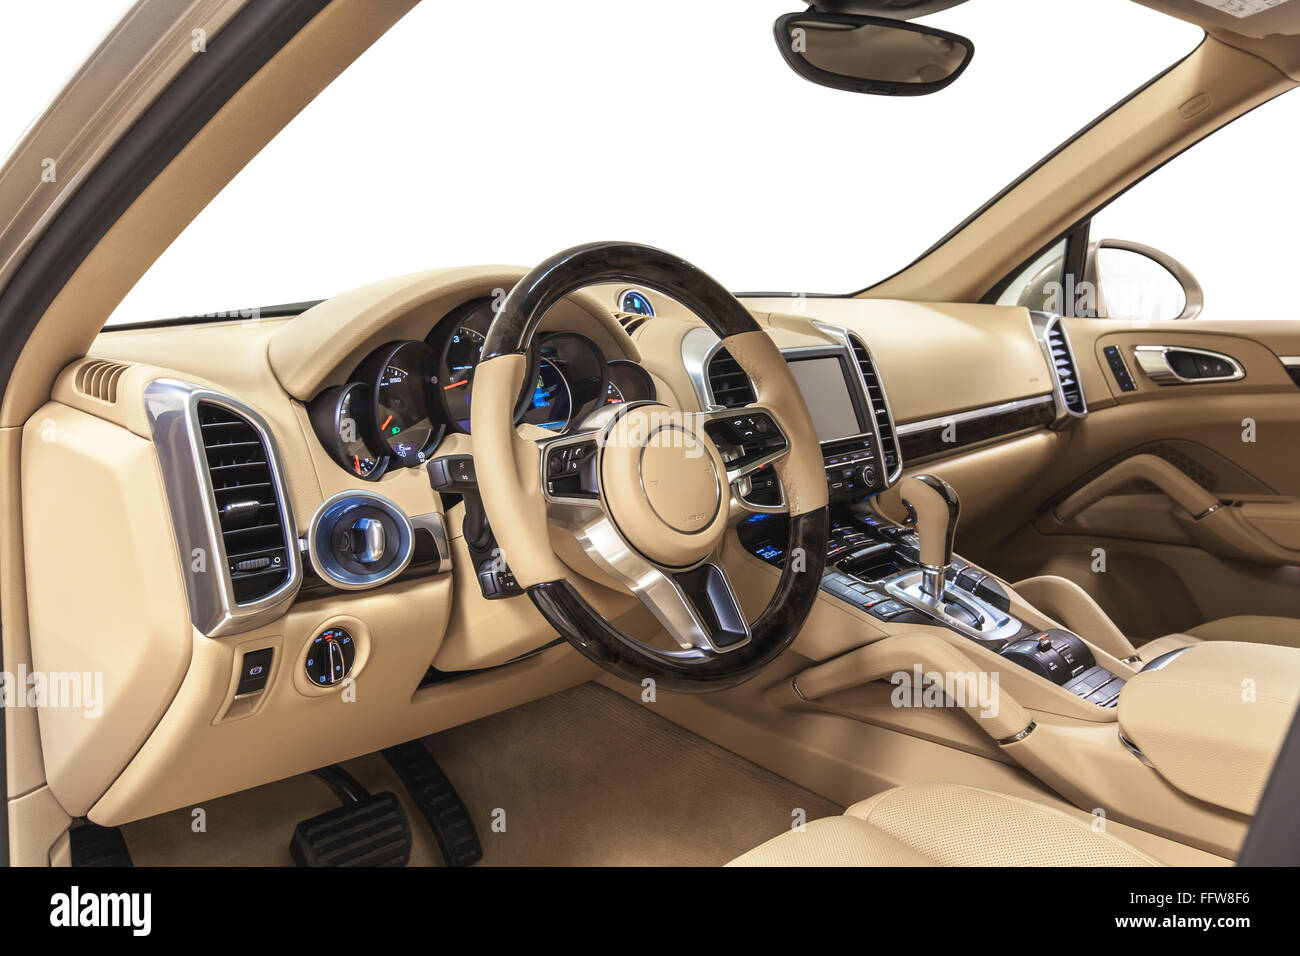 Car steering wheel interior luxury. Dashboard, shift, climate control. Cleaning and detailing car service. - Stock Image